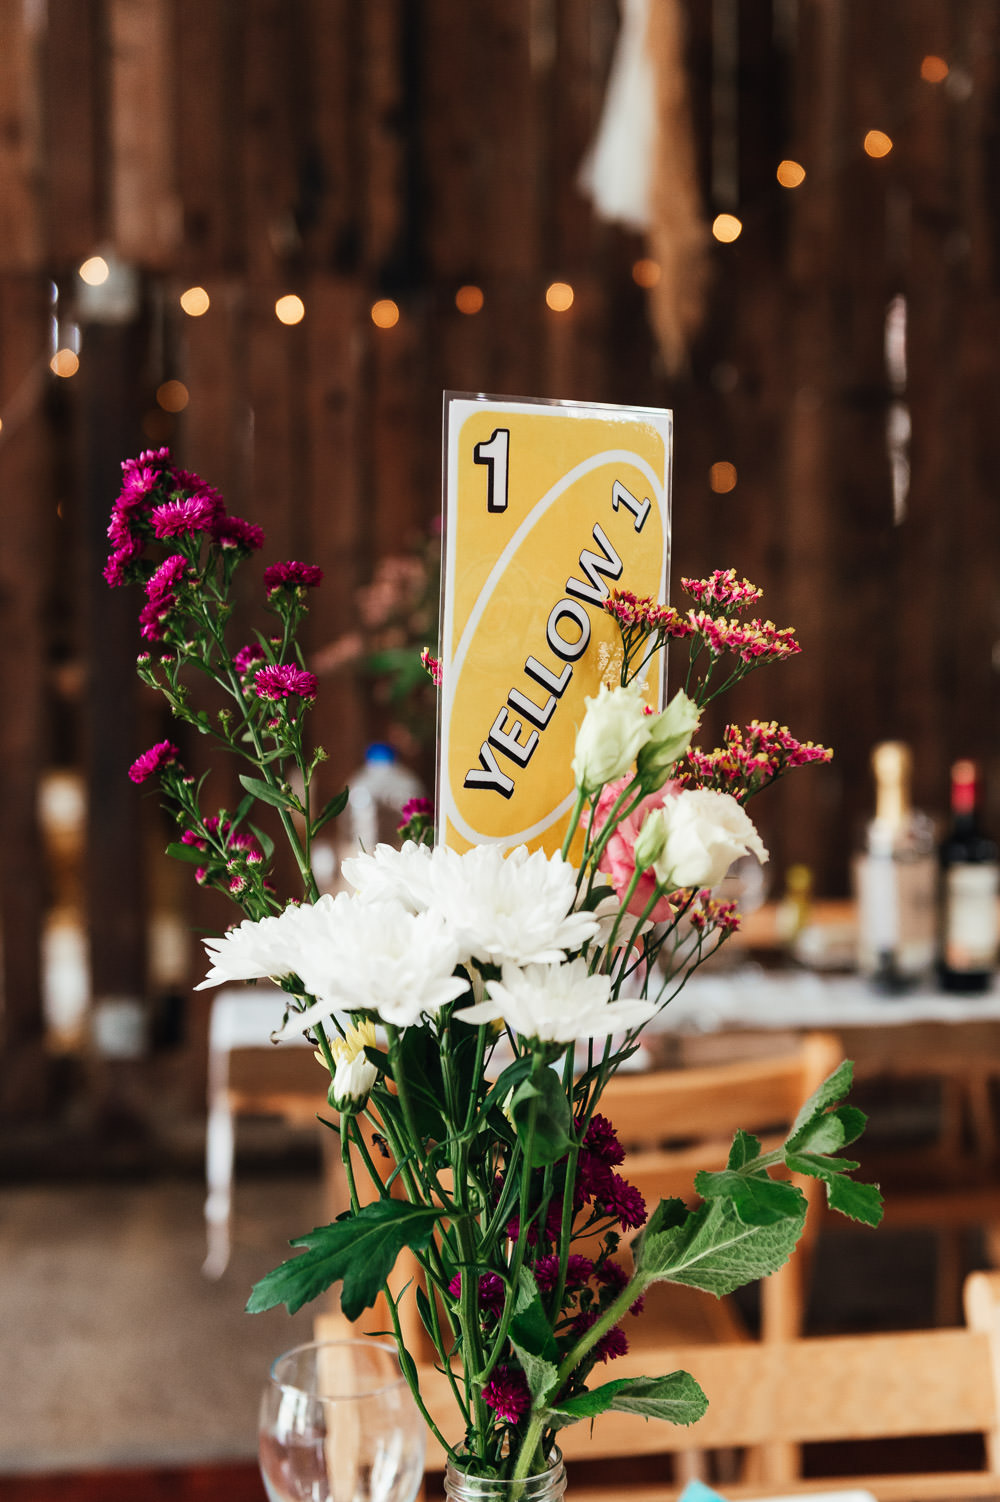 Table Flowers Decor Centrepiece Table Name Number Uno DIY Barn Wedding Jessica Grace Photography